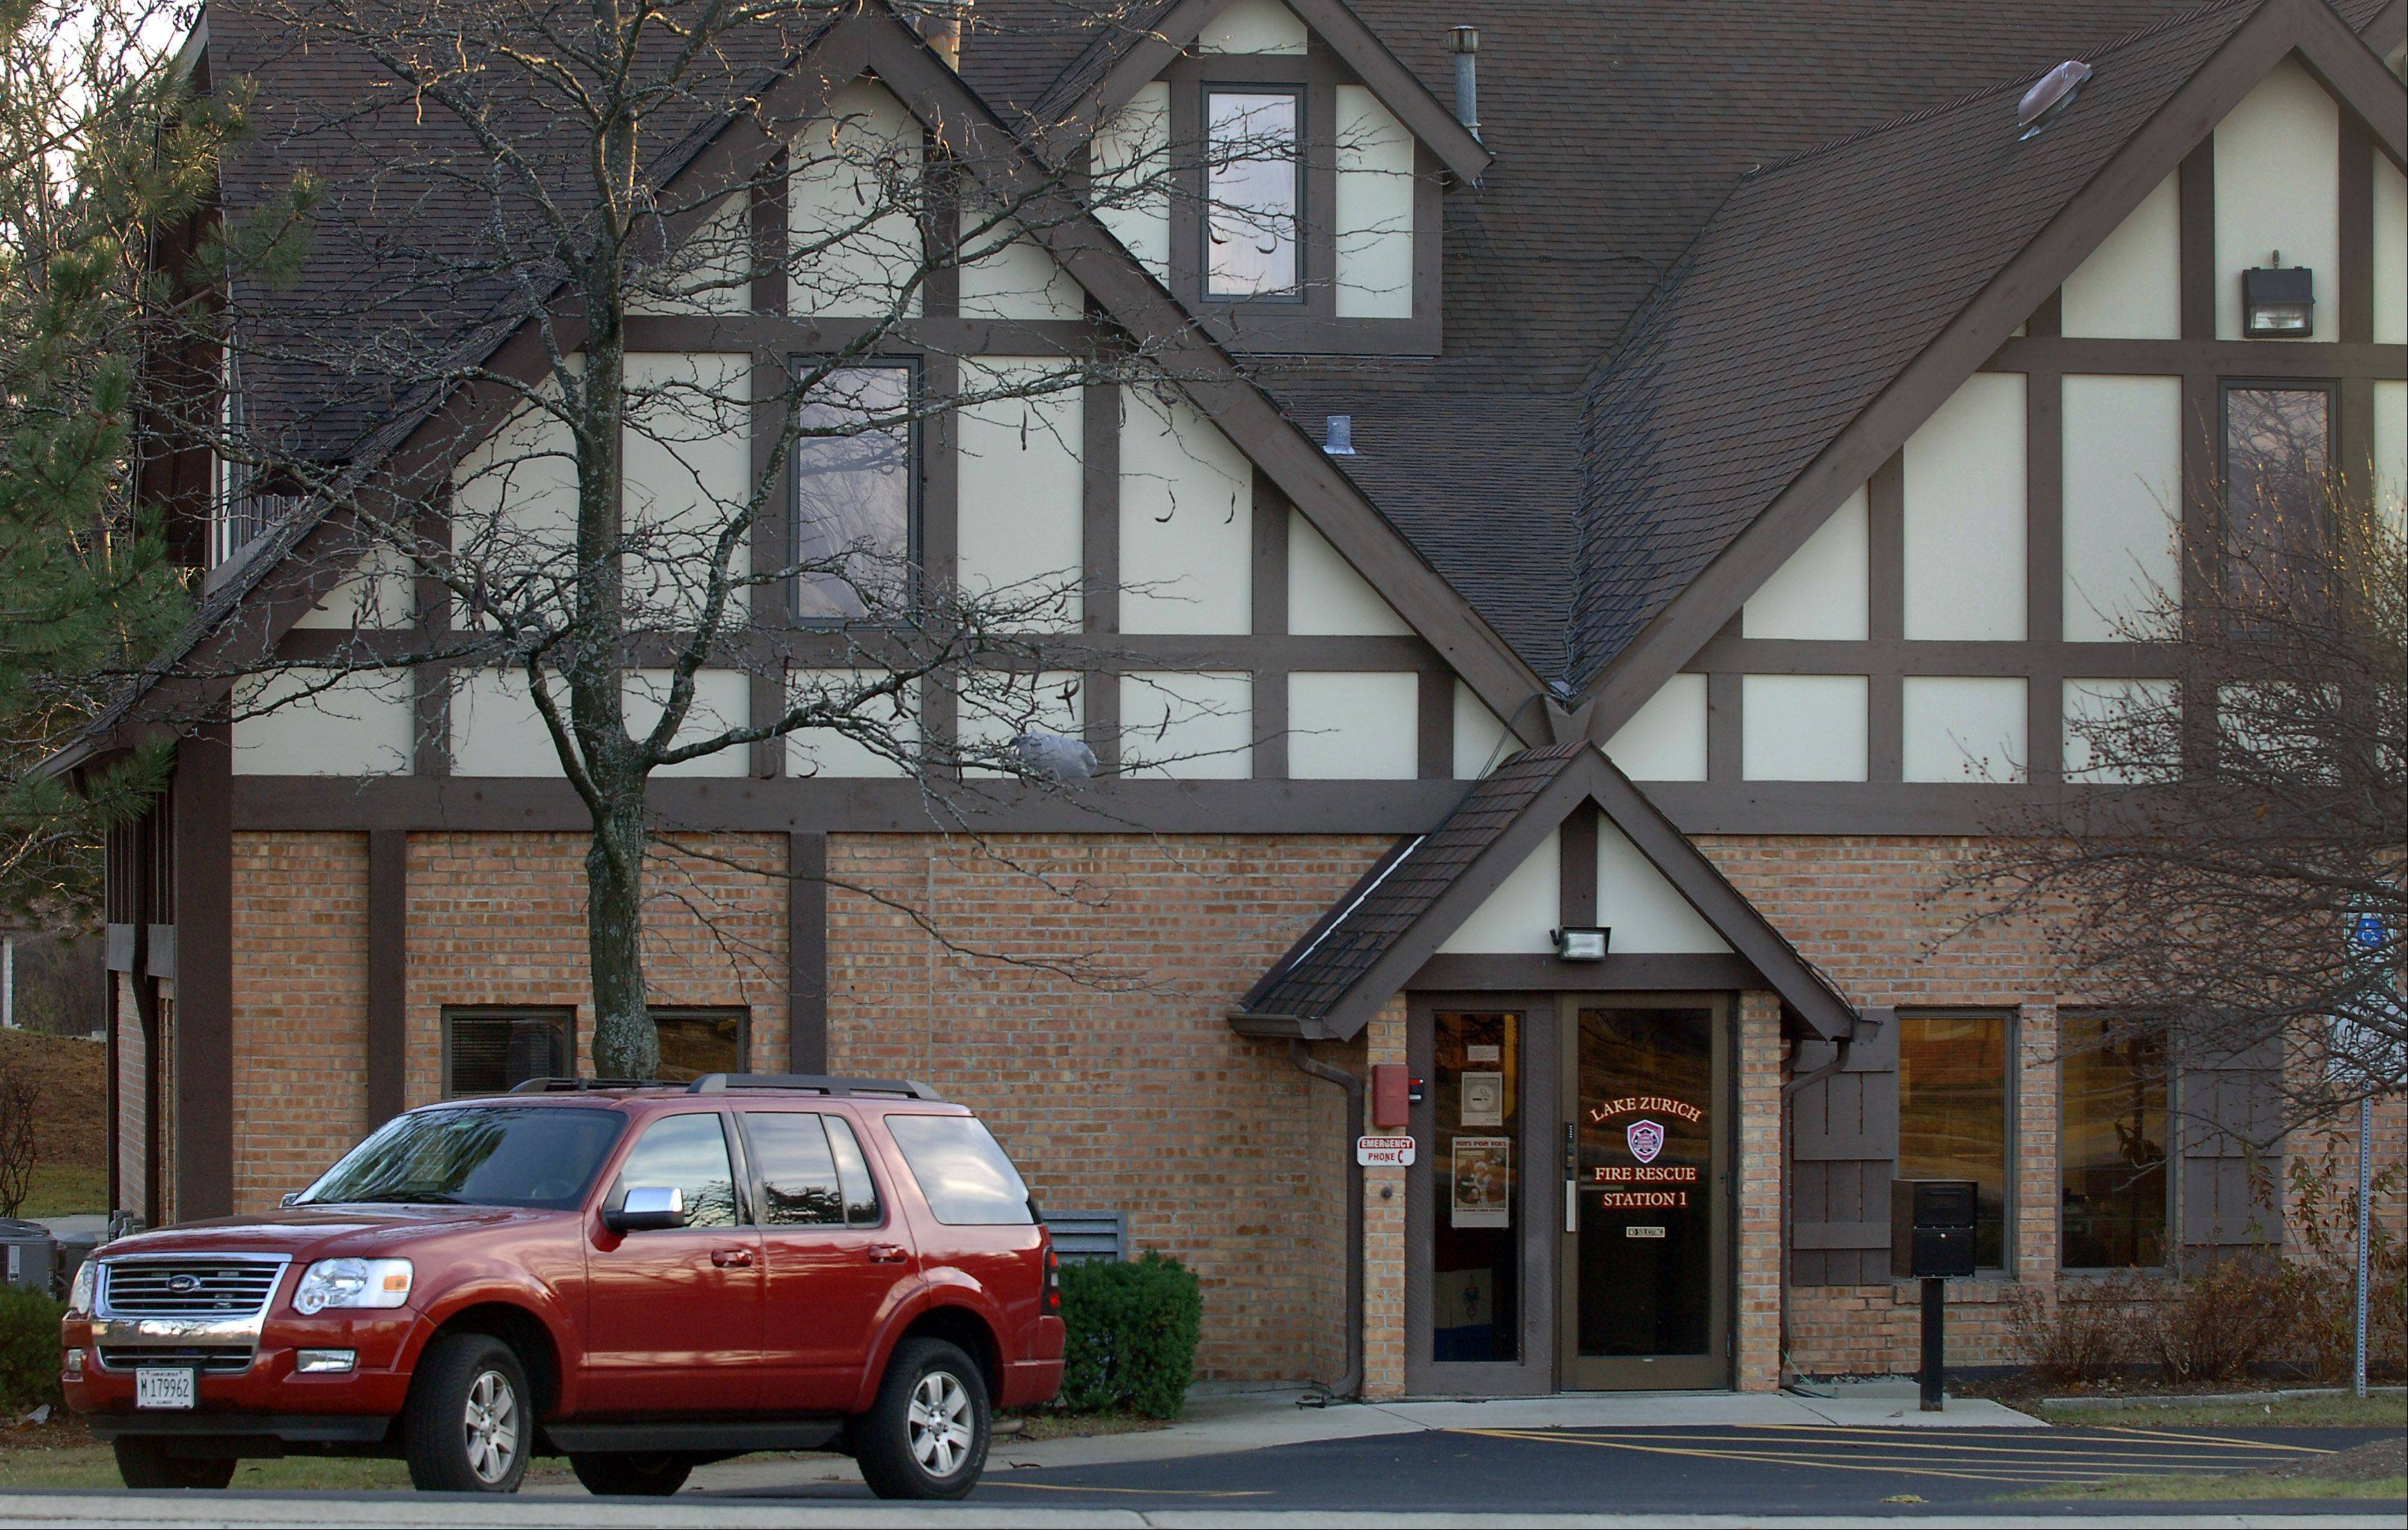 Lake Zurich fire station No. 1 on Buesching Road is one of the firehouses that could be closed if operations are combined at a new facility.